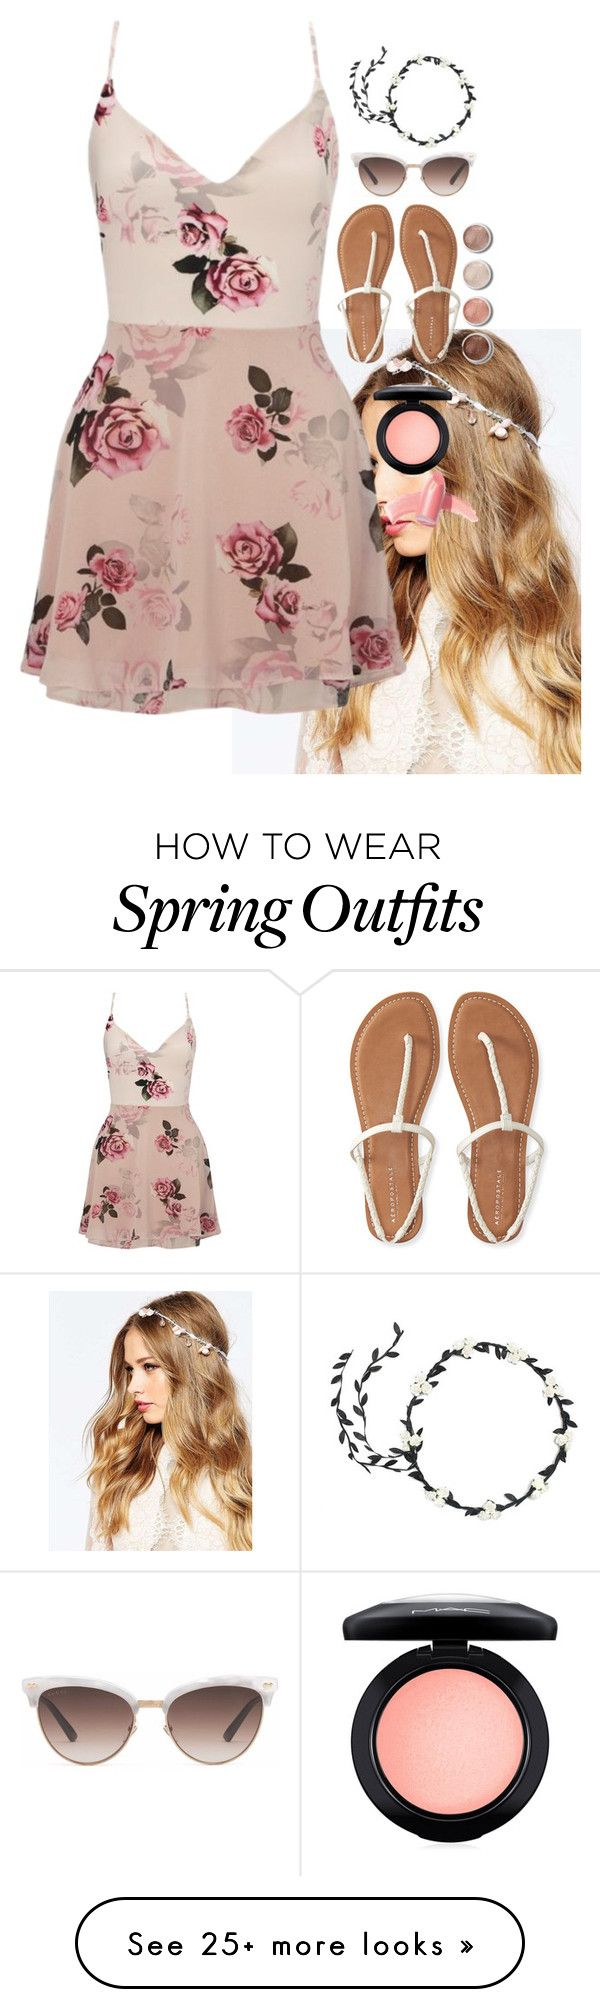 """Spring Outfit"" by madeiintheam on Polyvore featuring ASOS, Lipsy, Aéropostale, Gucci, Terre Mère, Elizabeth Arden, MAC Cosmetics, Spring, springfashion and springdress"